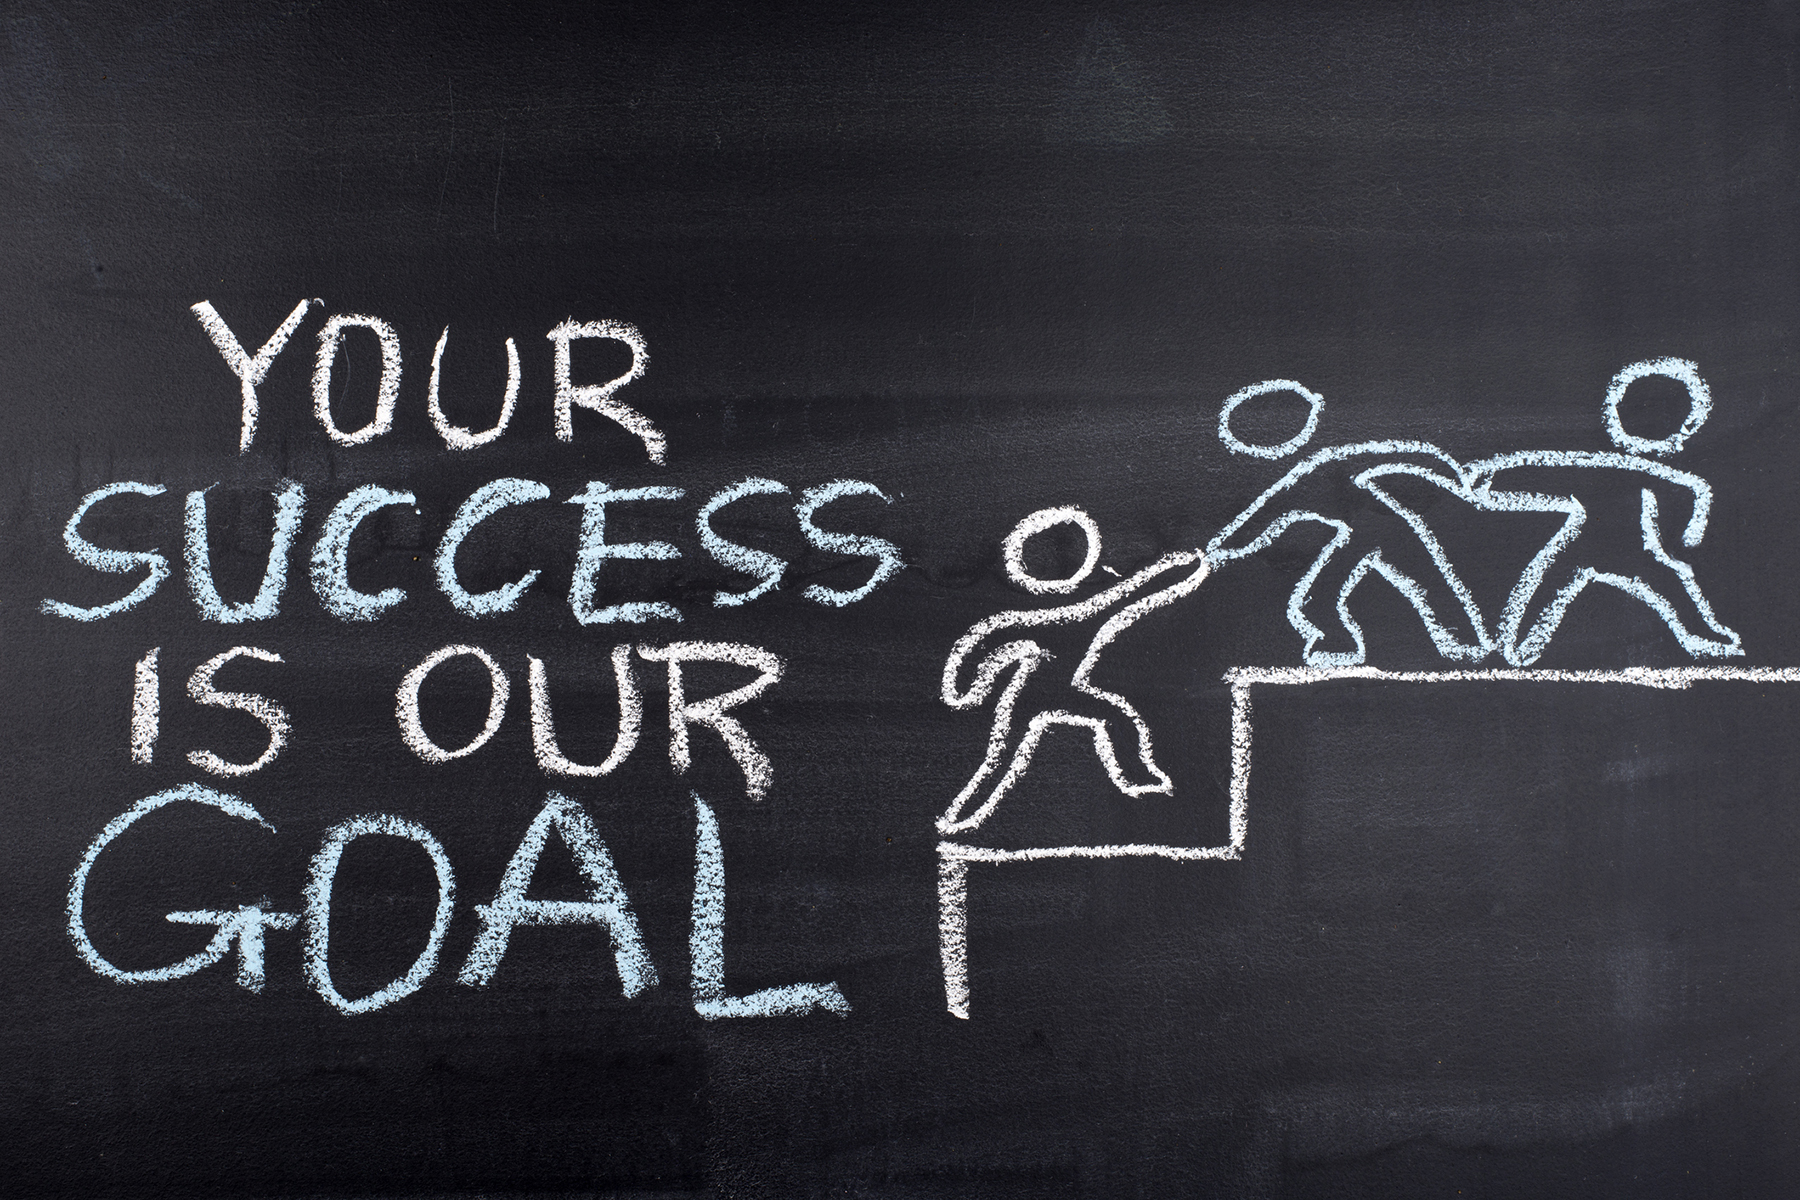 Your success is our goal hand drawing on blackboard